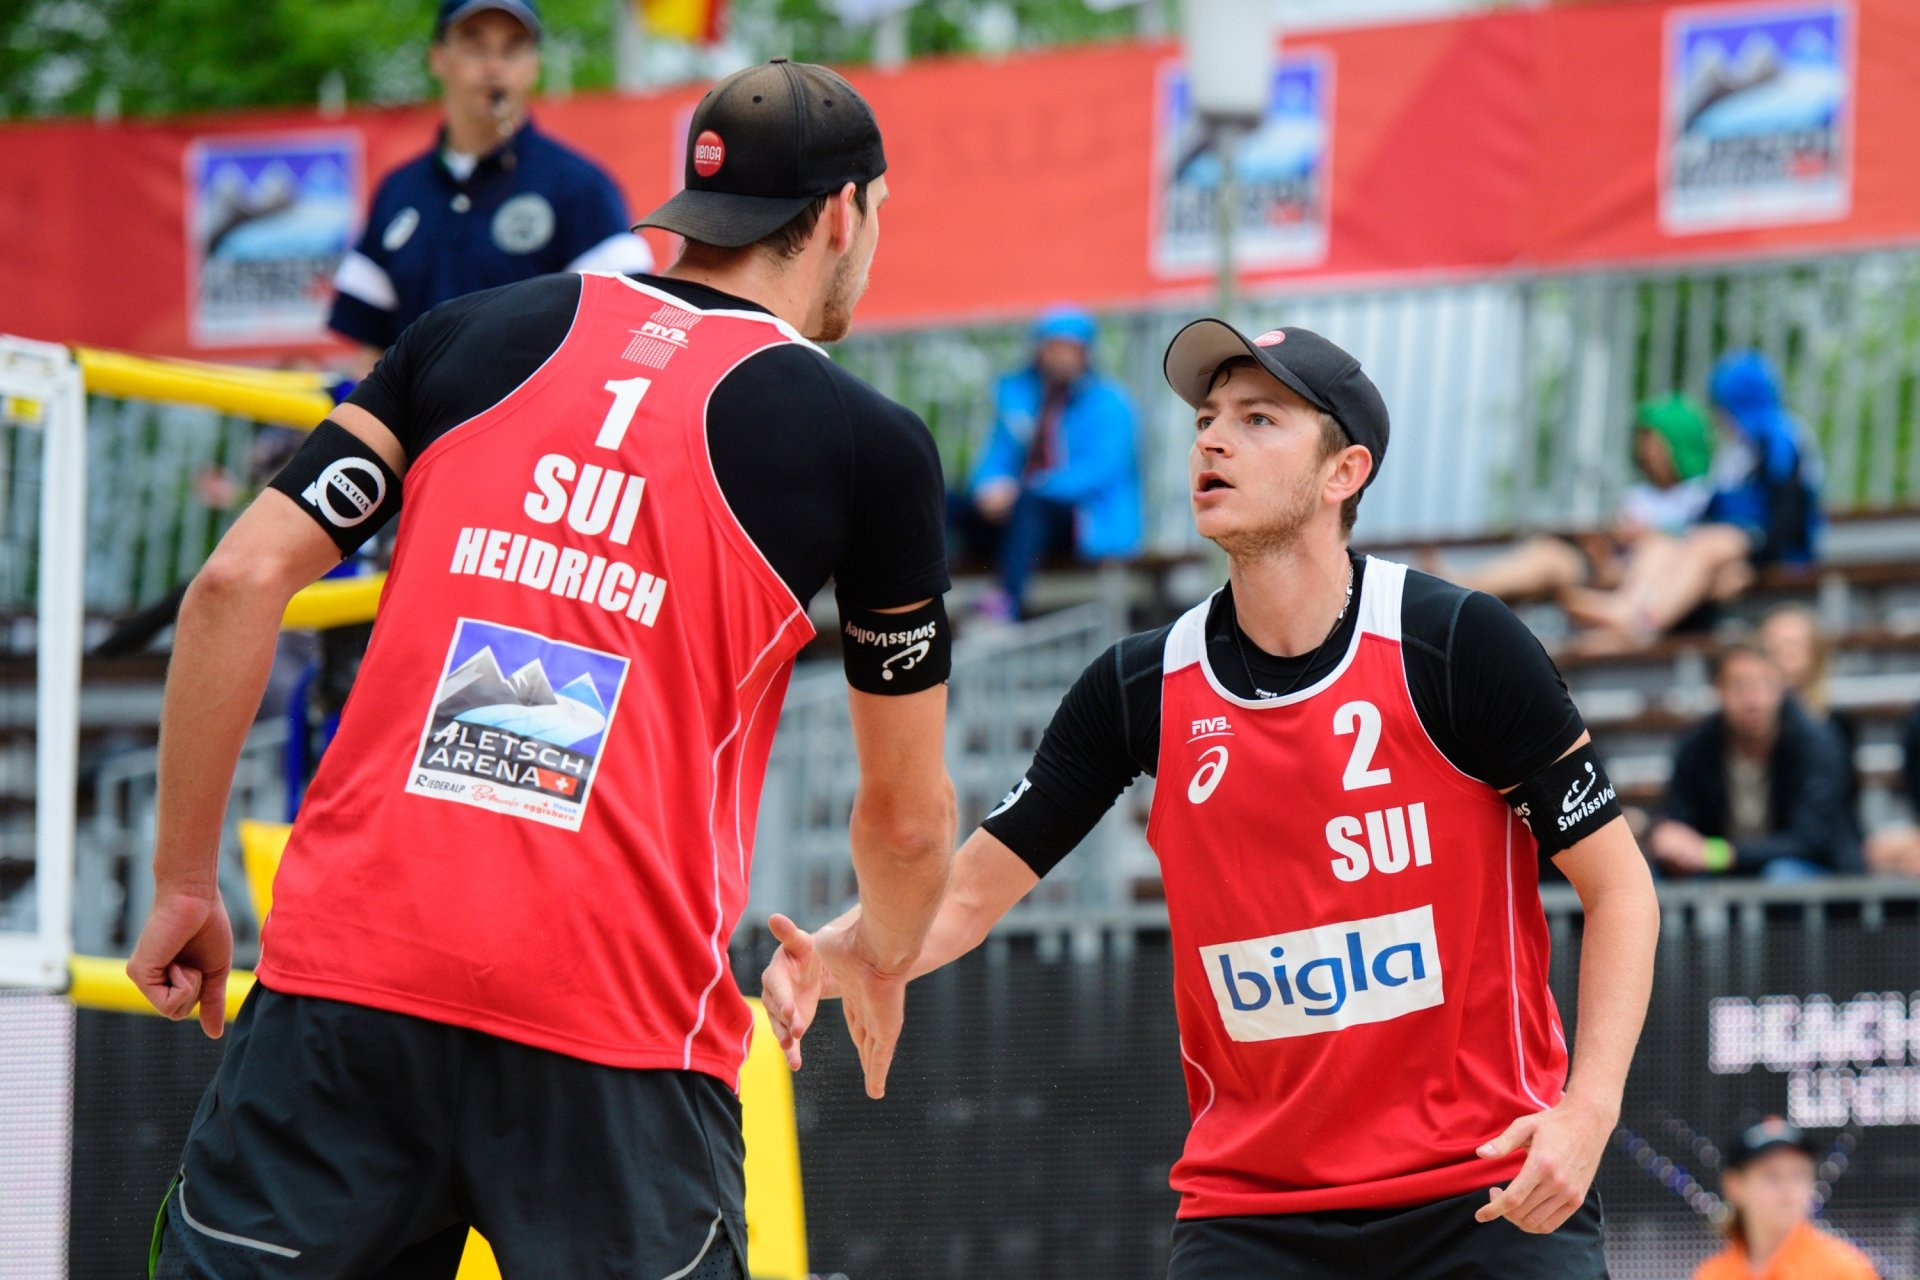 Heidrich and Gerson are looking to build from the bronze medal they won in Lucerne (Photocredit: FIVB)